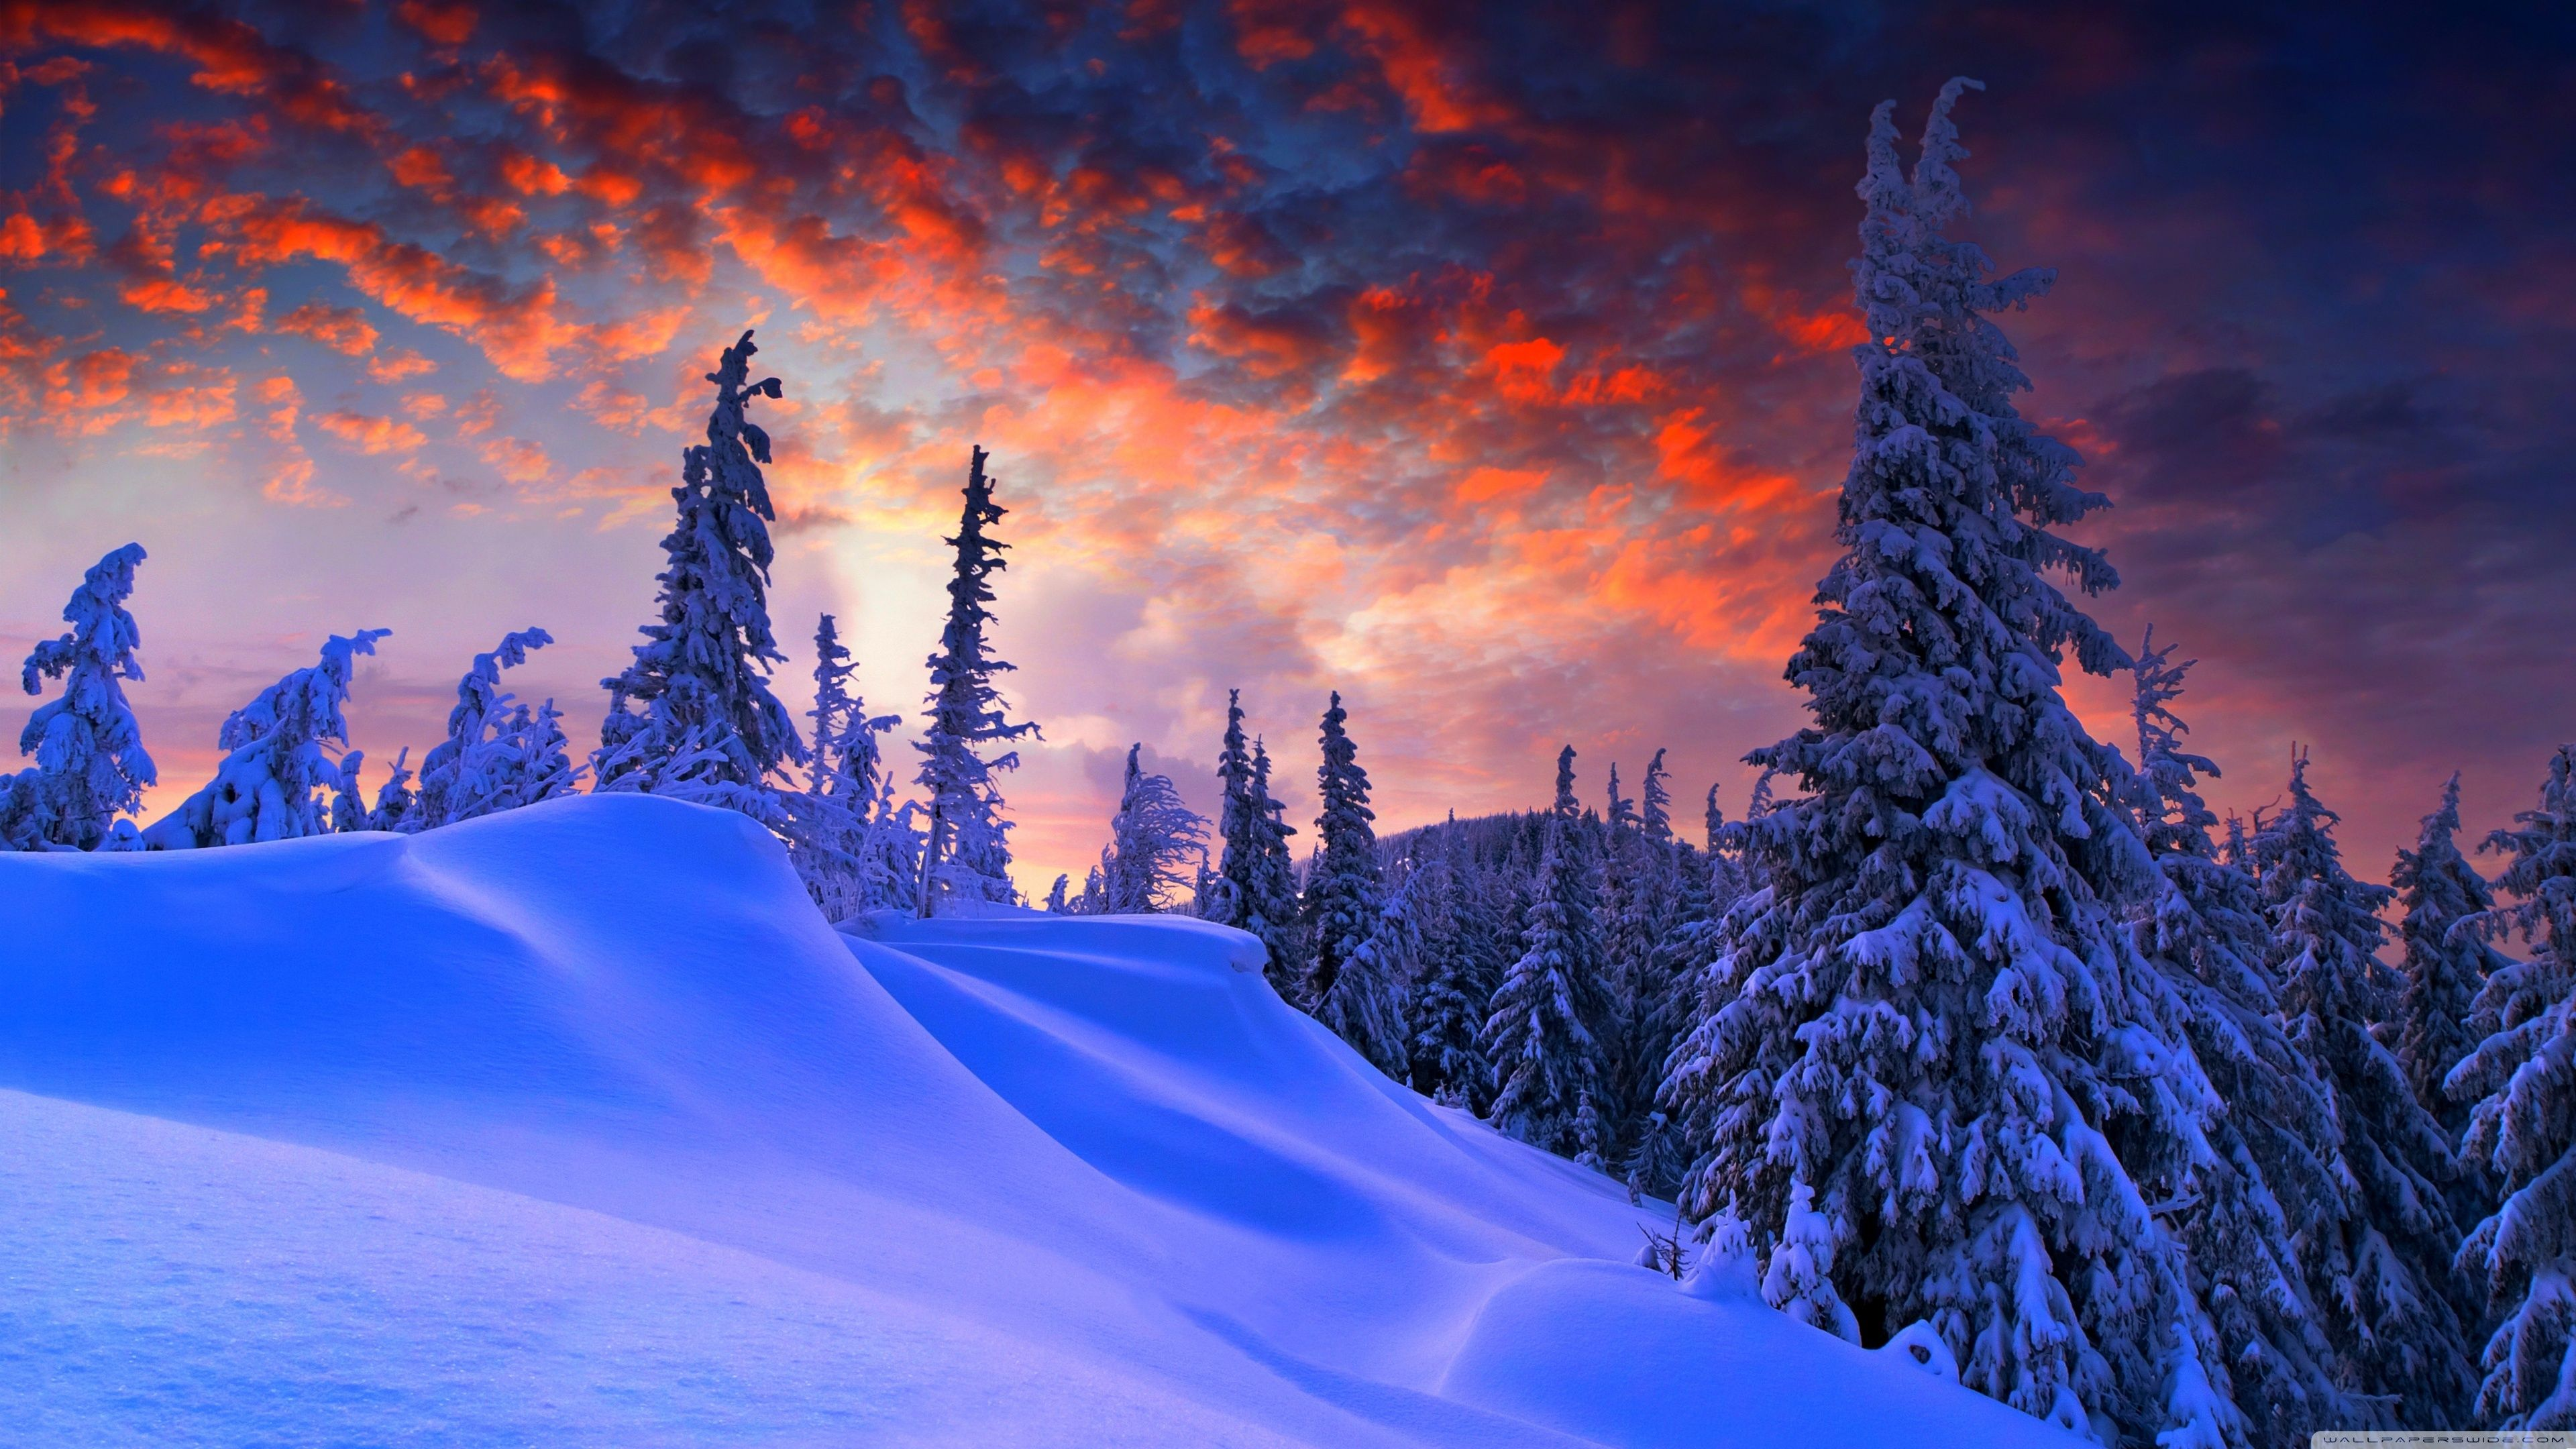 4k 16 9 Winter Wallpapers Top Free 4k 16 9 Winter